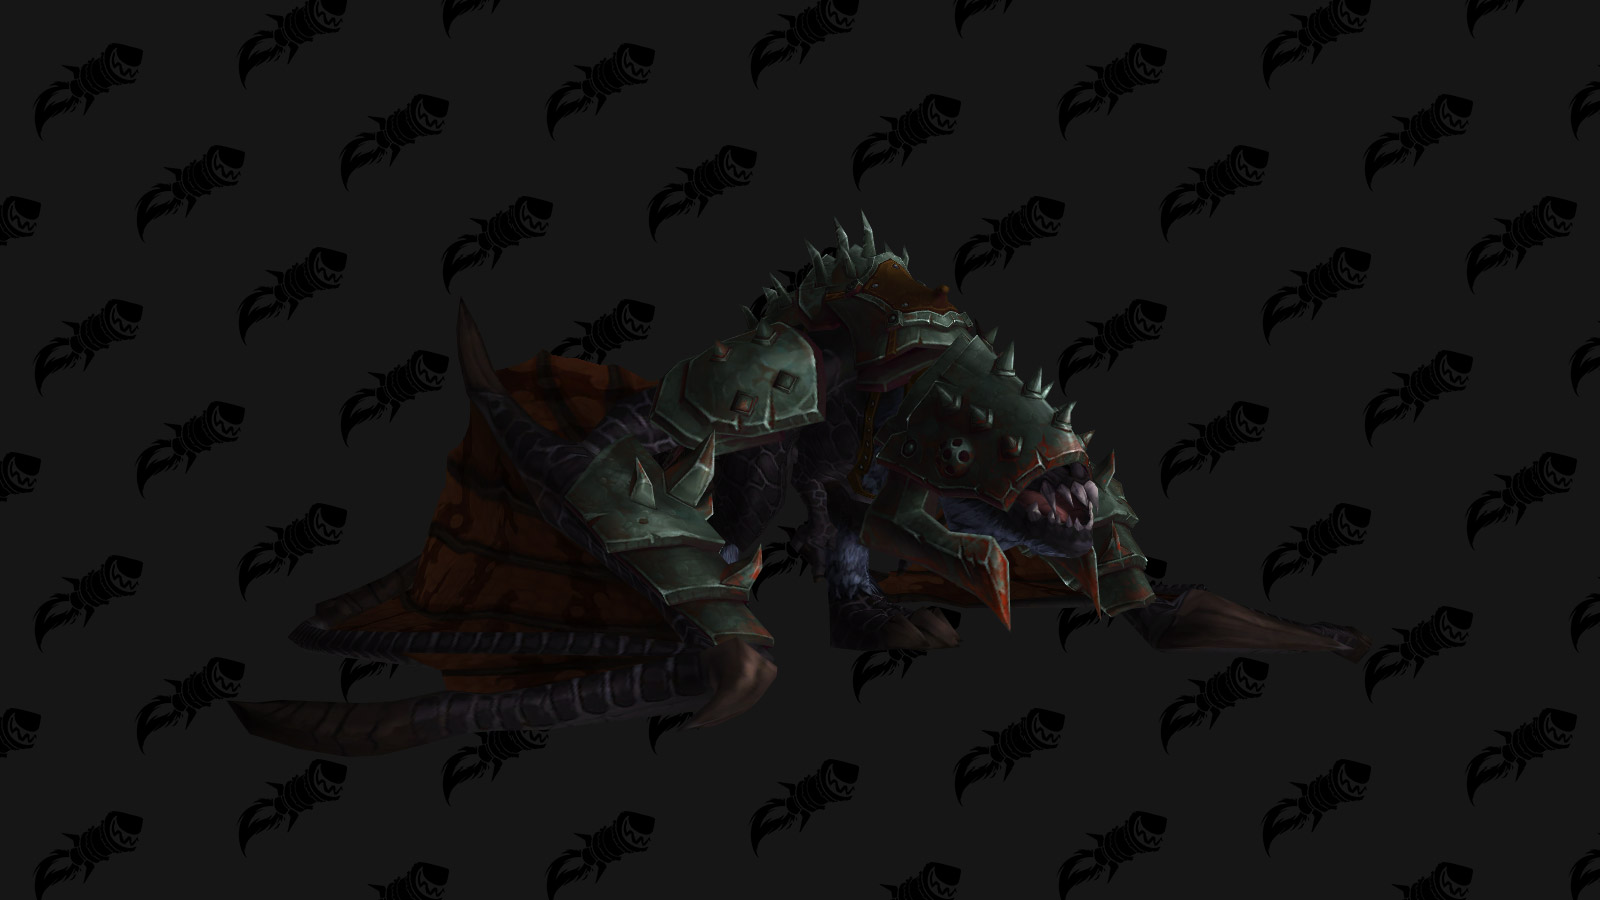 La monture Proto-drake du gladiateur noir est une monture PVP de l'extension Battle for Azeroth